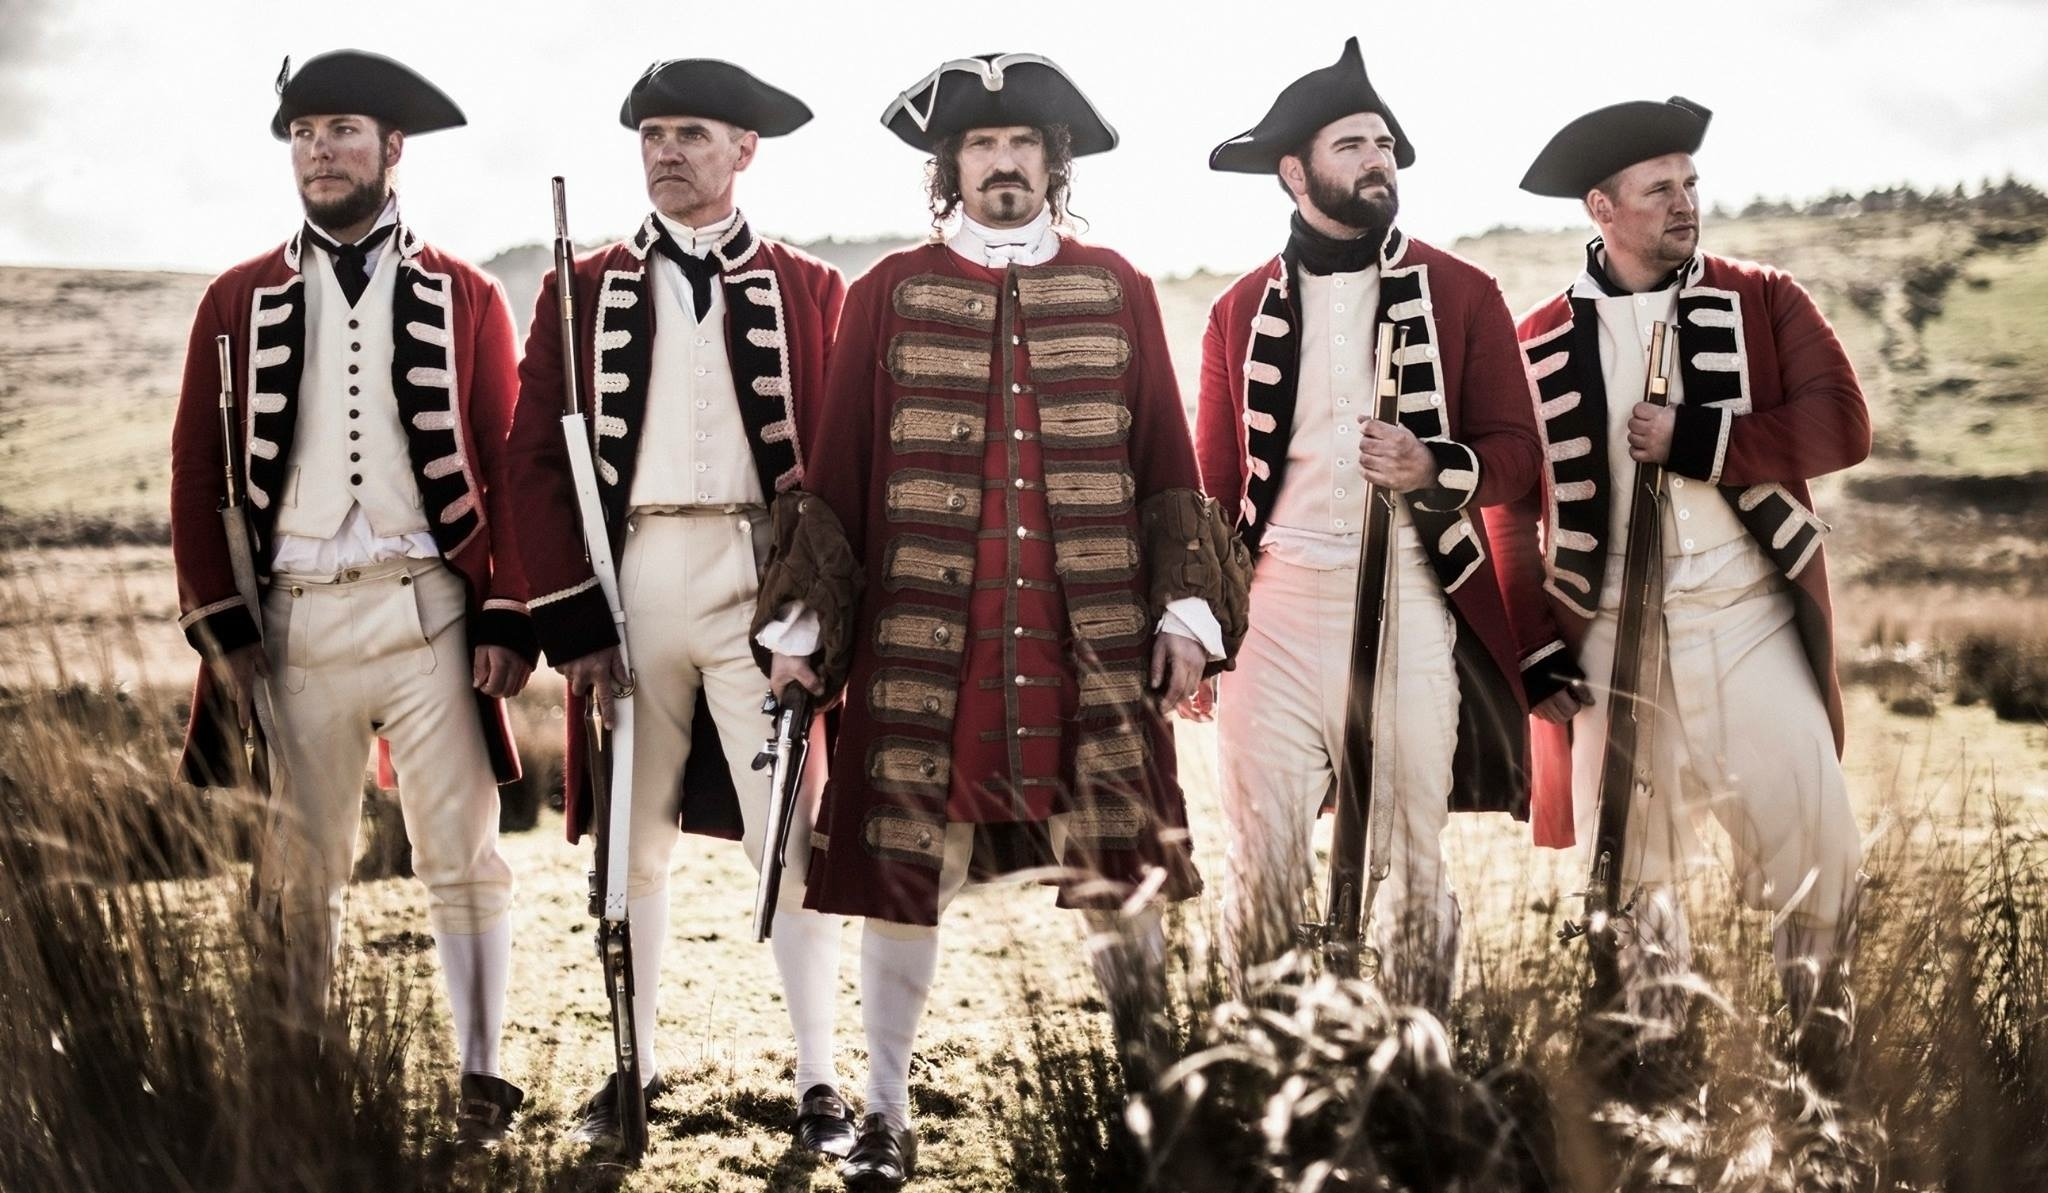 Lee Galley, Guillaume Rivaud, Richie Crane, Ben Robins, and Stuart Milliner in The Highwayman (2016)